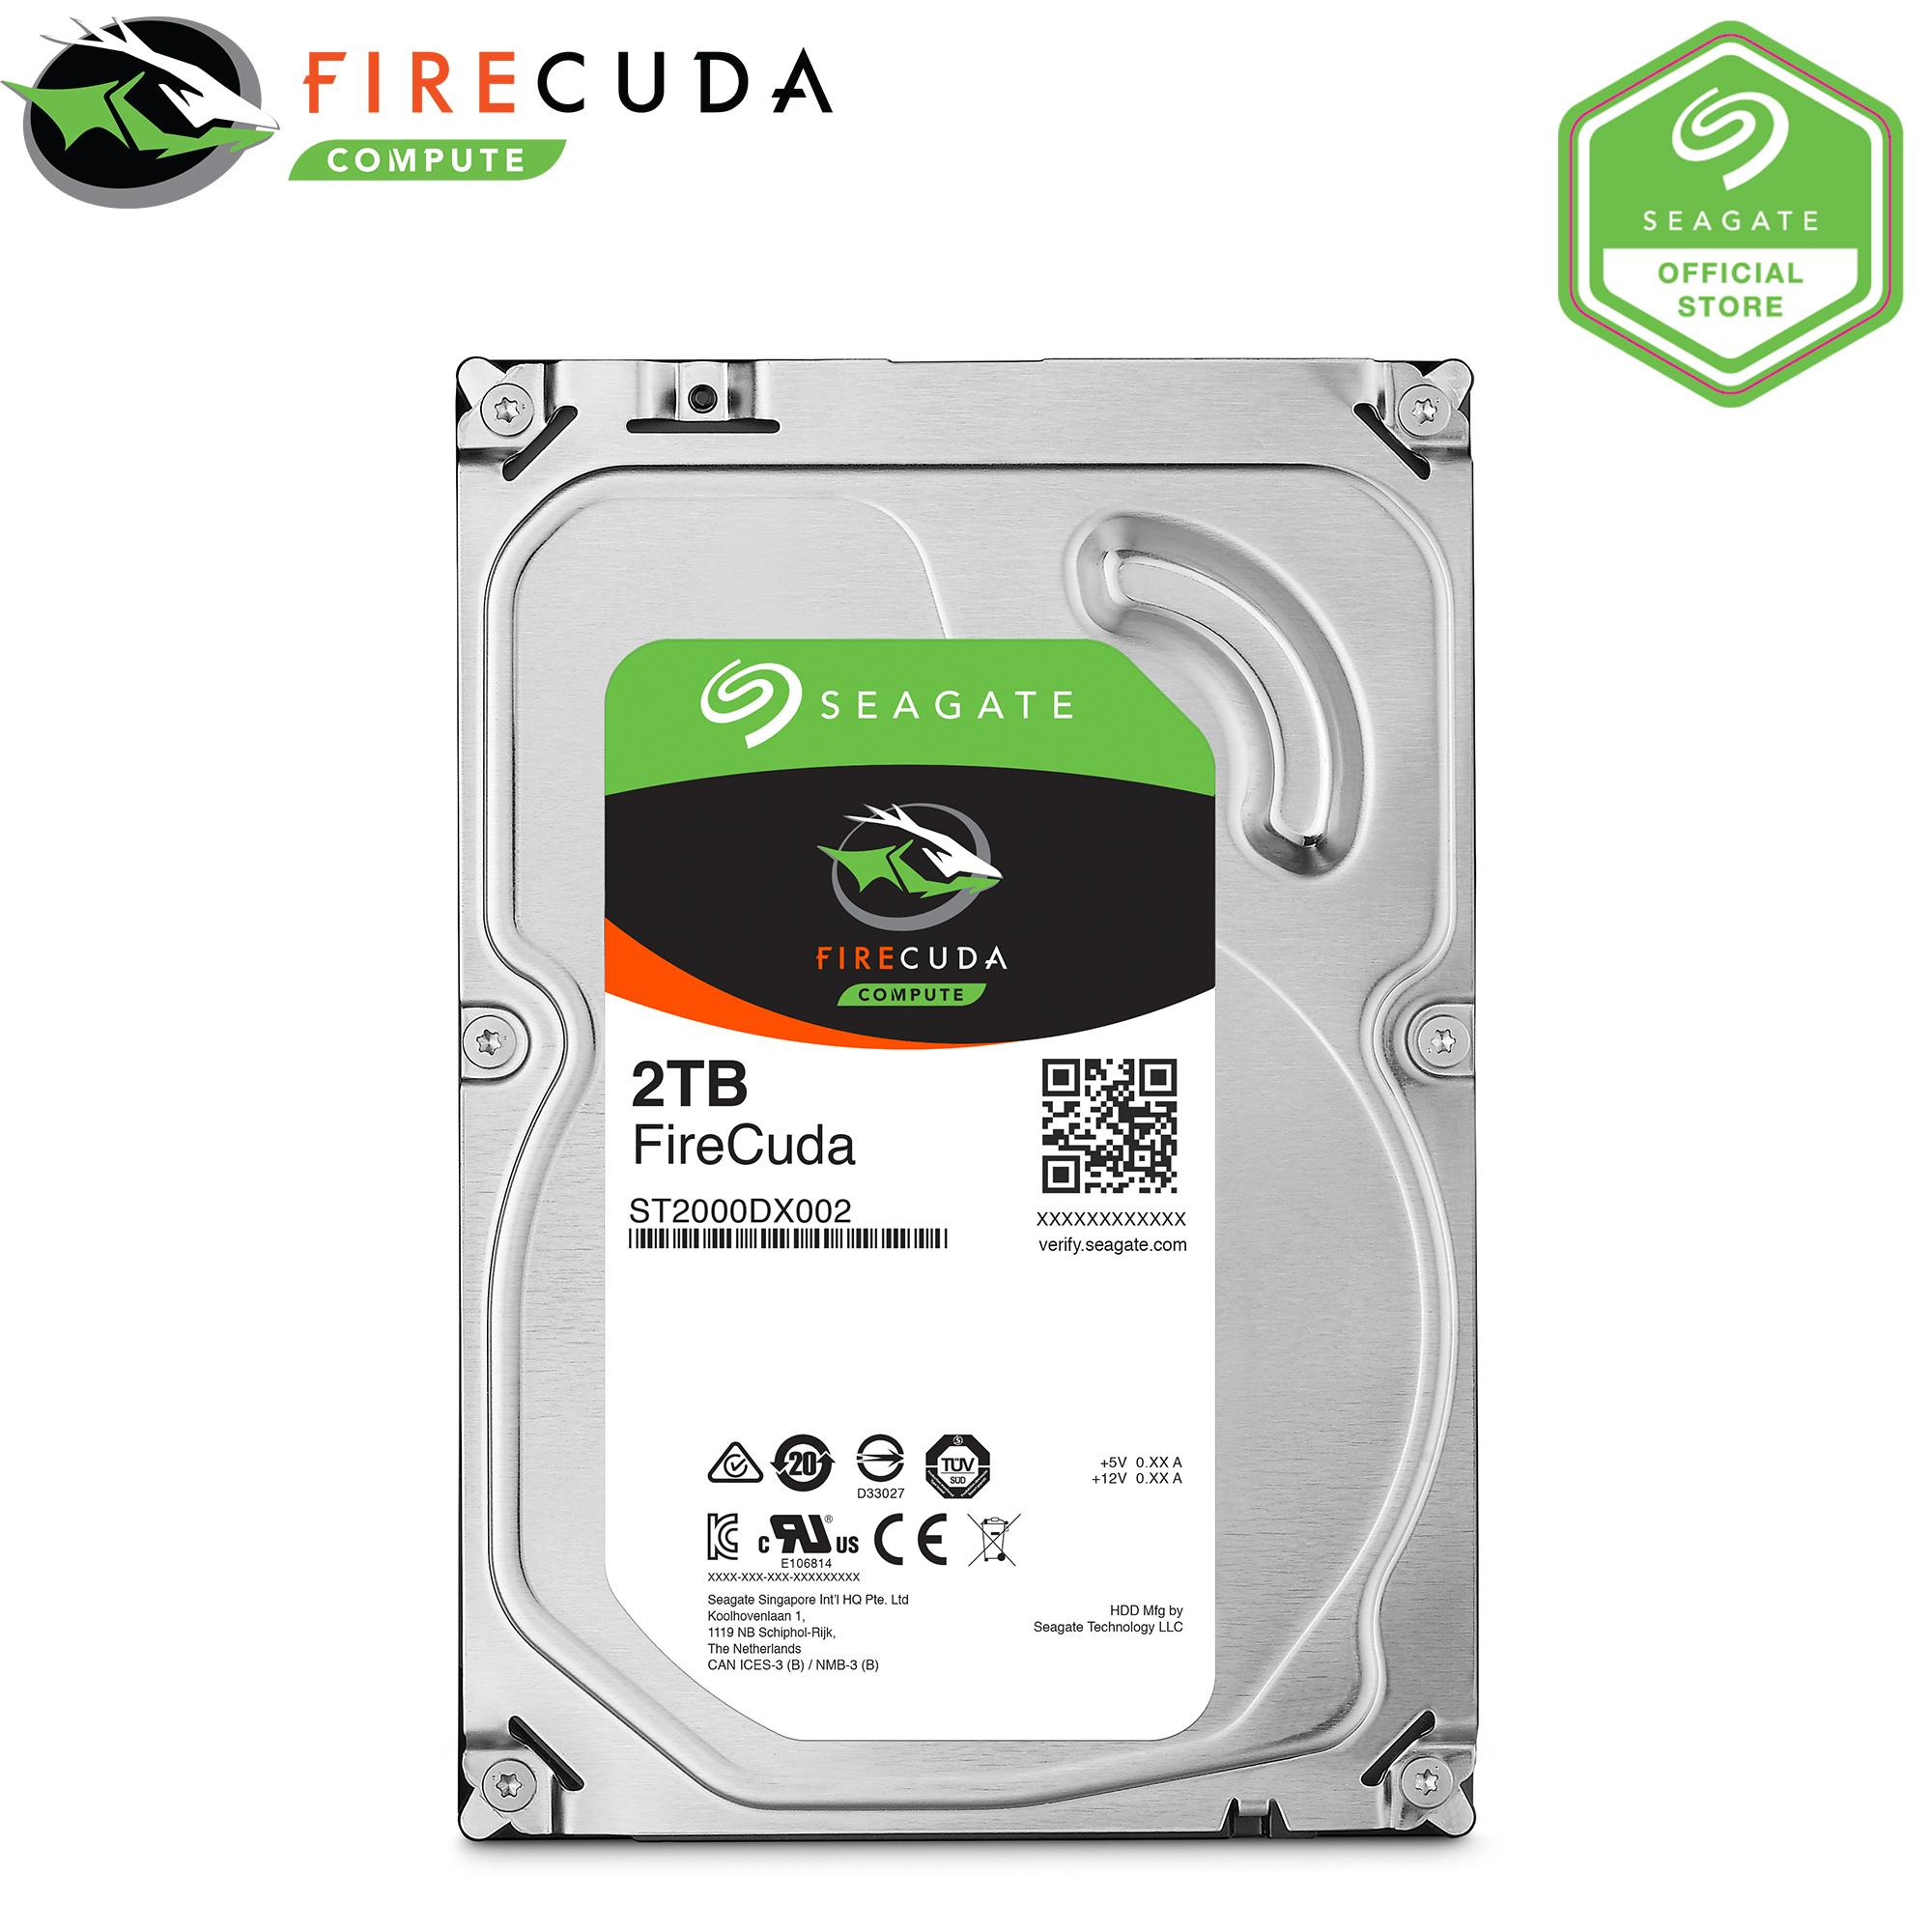 Best Reviews Of Seagate Firecuda™ 3 5 2Tb Desktop Hard Disk